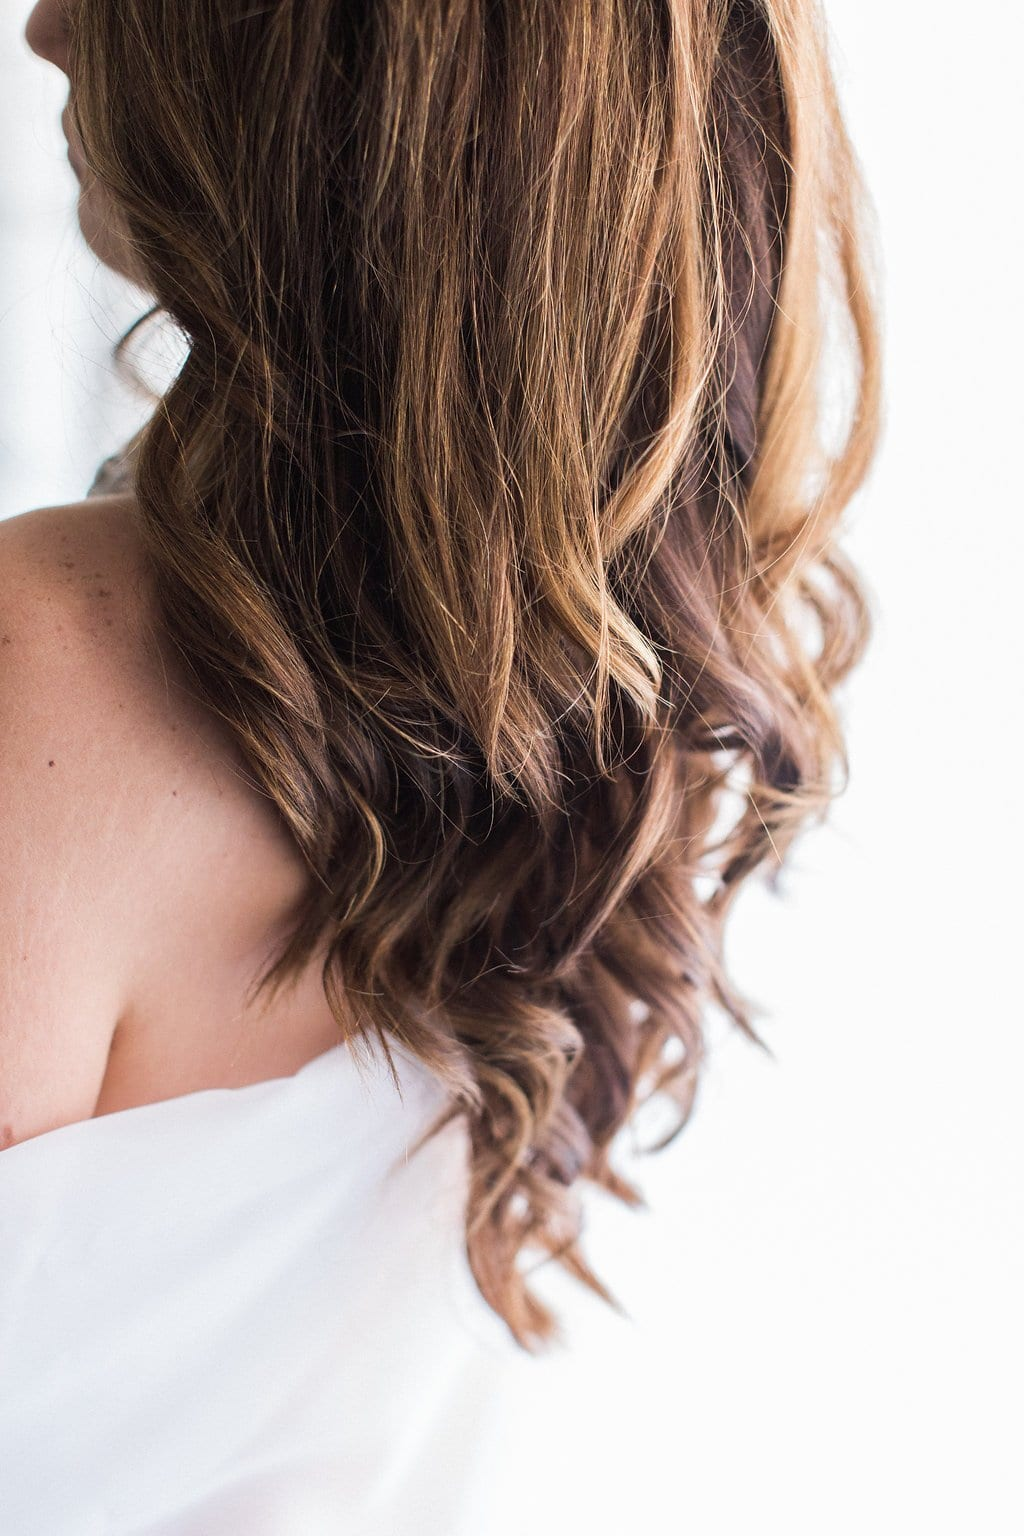 Bridal Boudoir Photography image of hair during session